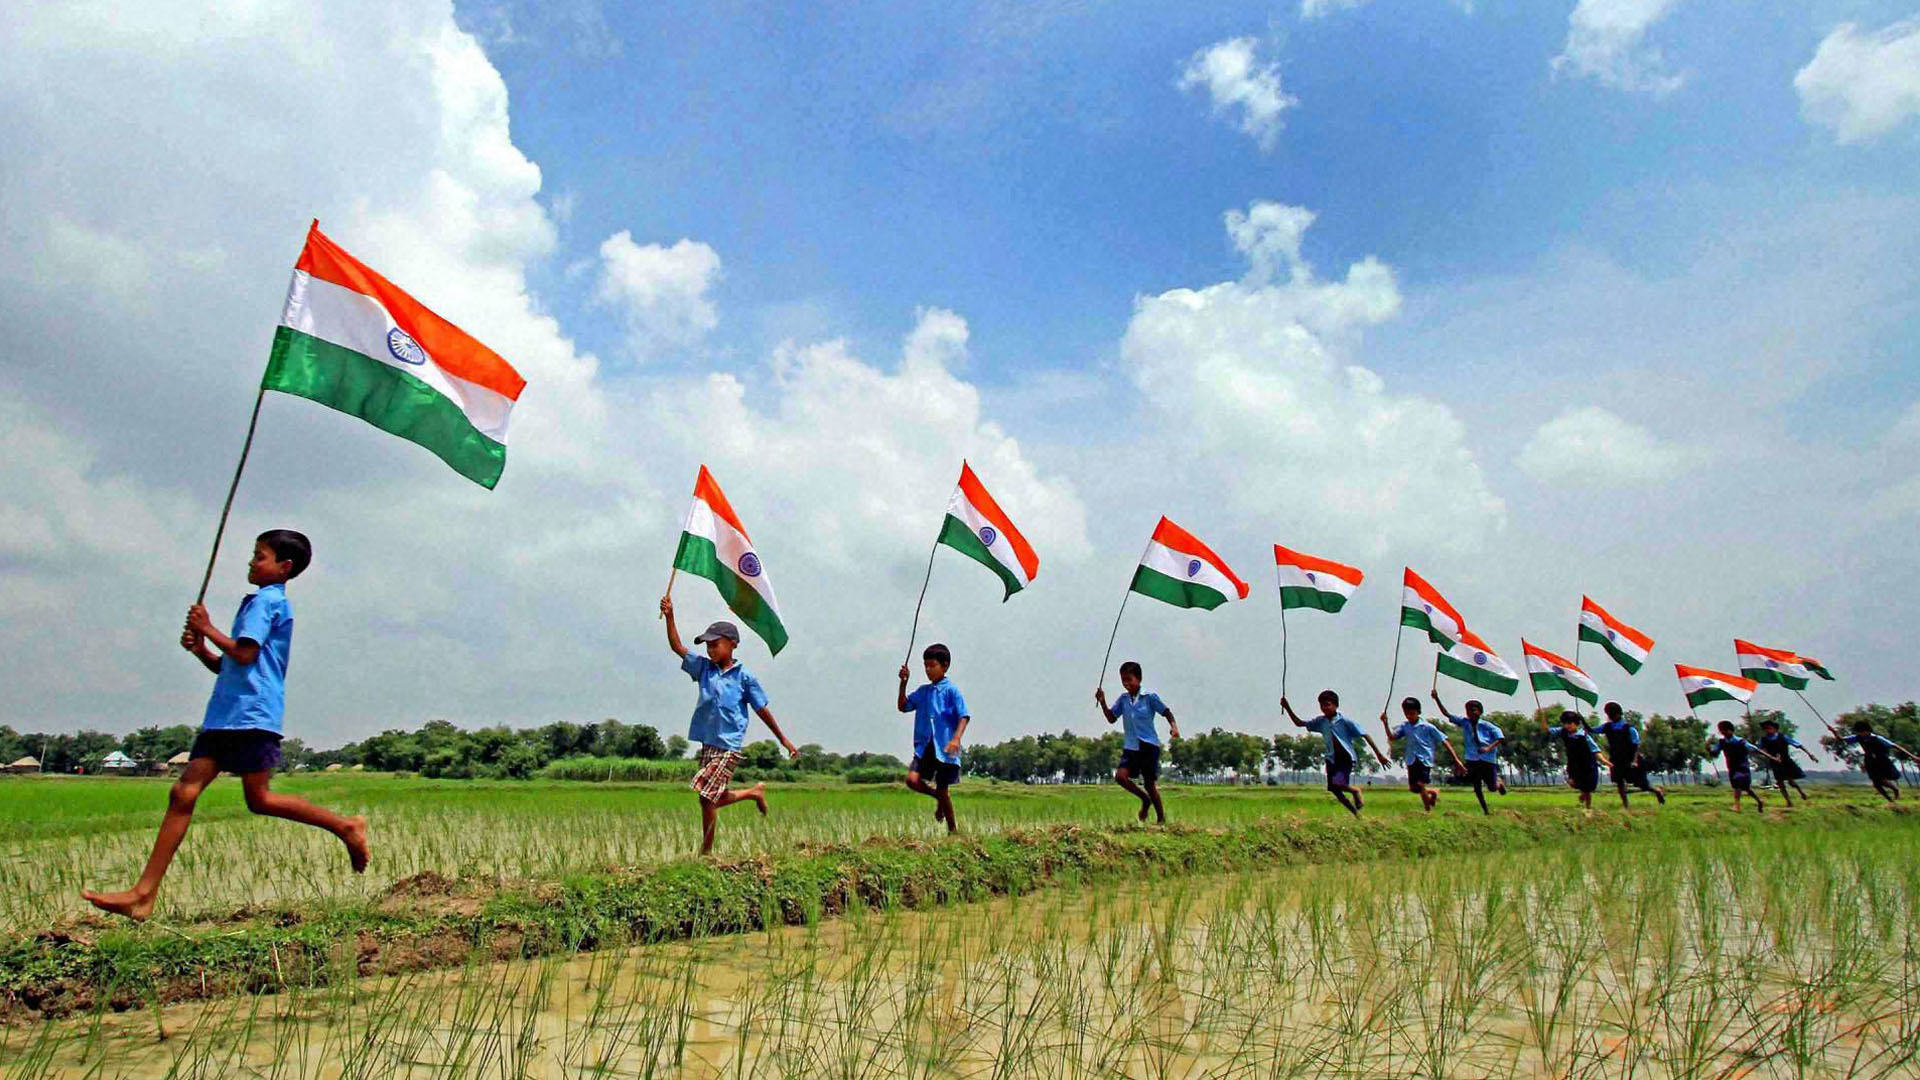 Indian Independence Day Wallpaper 1920x1080